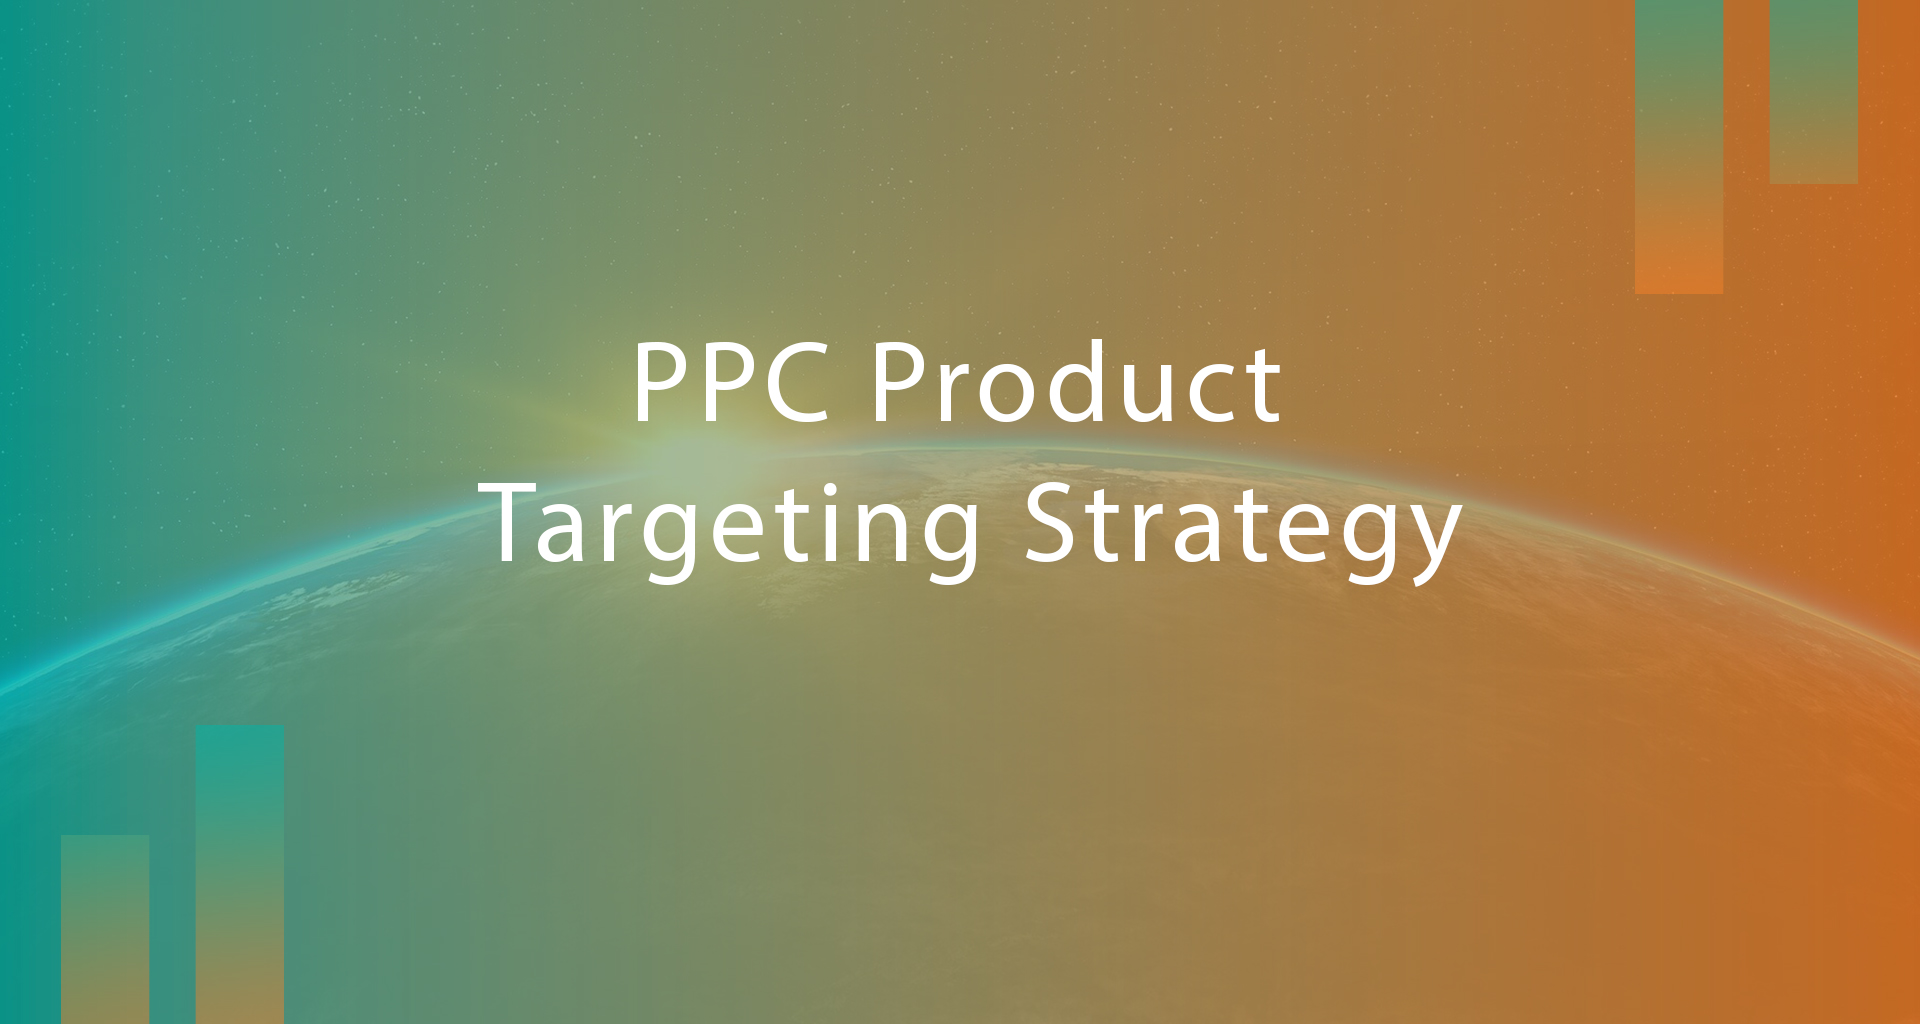 Amazon PPC Product Targeting Strategy for Amazon Sellers in 2019